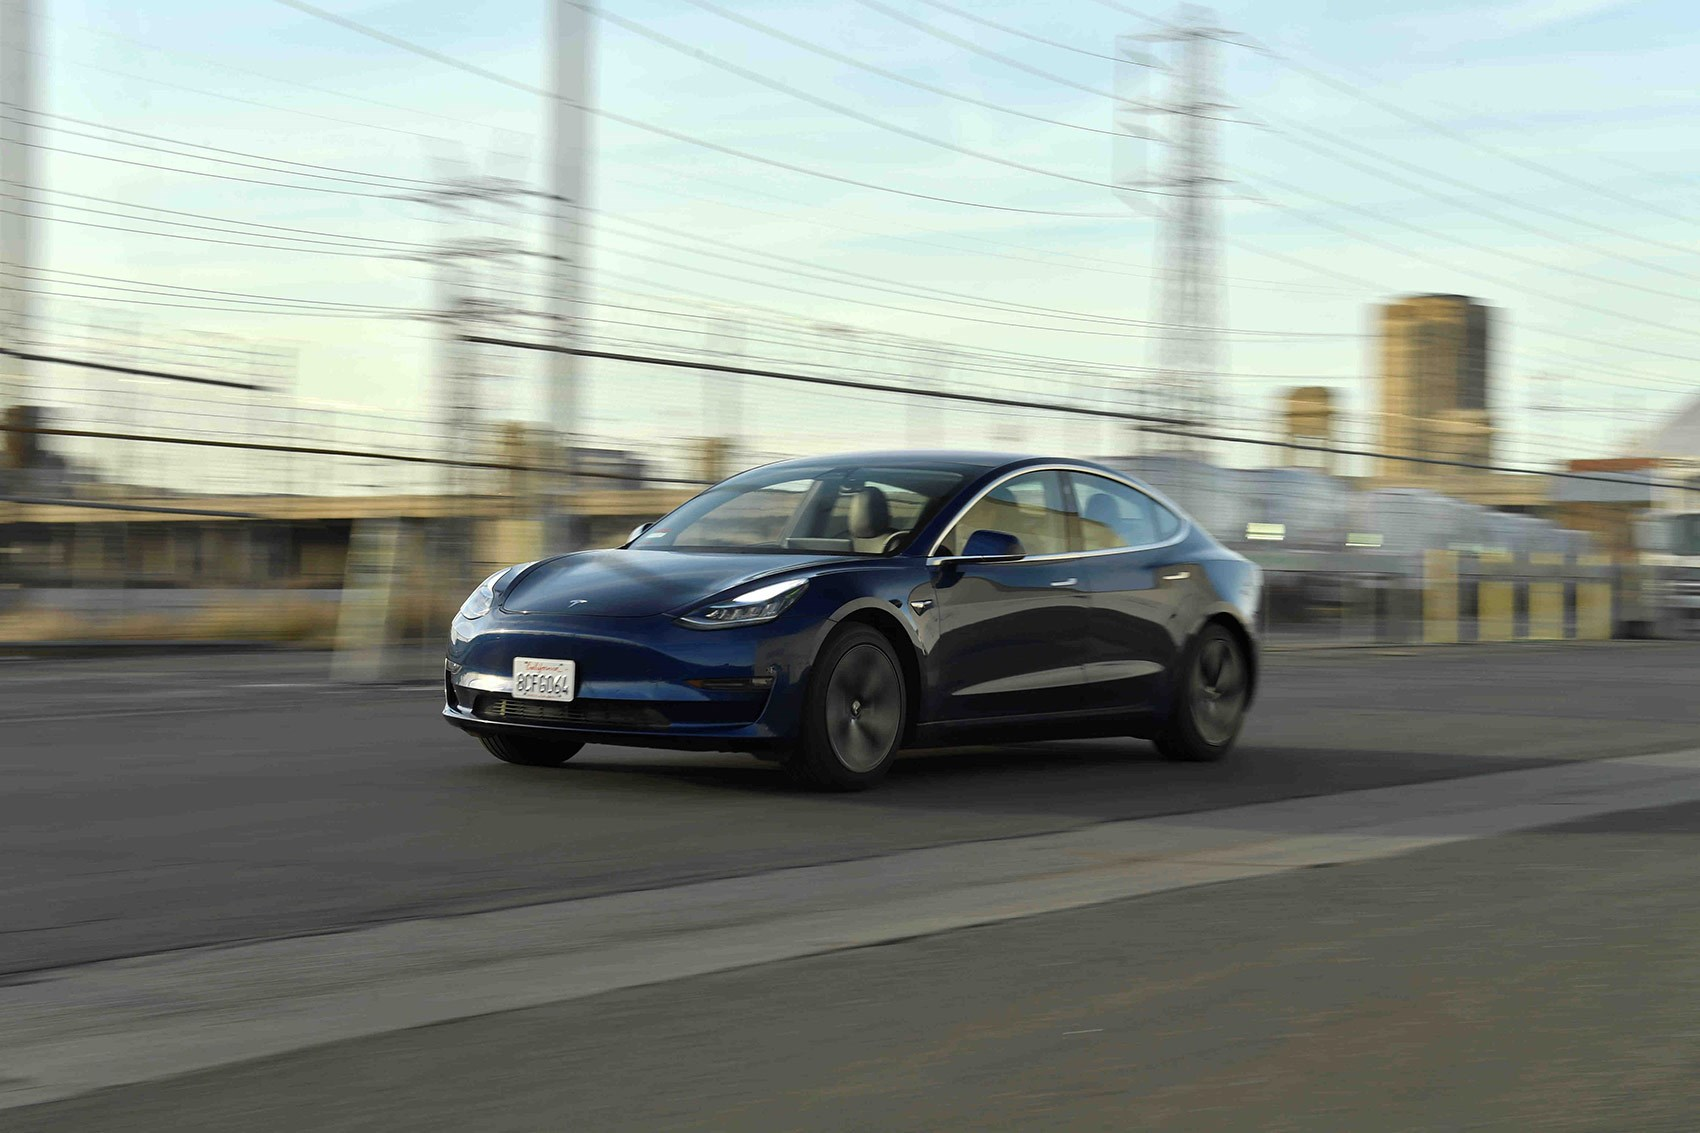 Tesla Model 3: CAR magazine UK's review, pictures by Jamie Lipman